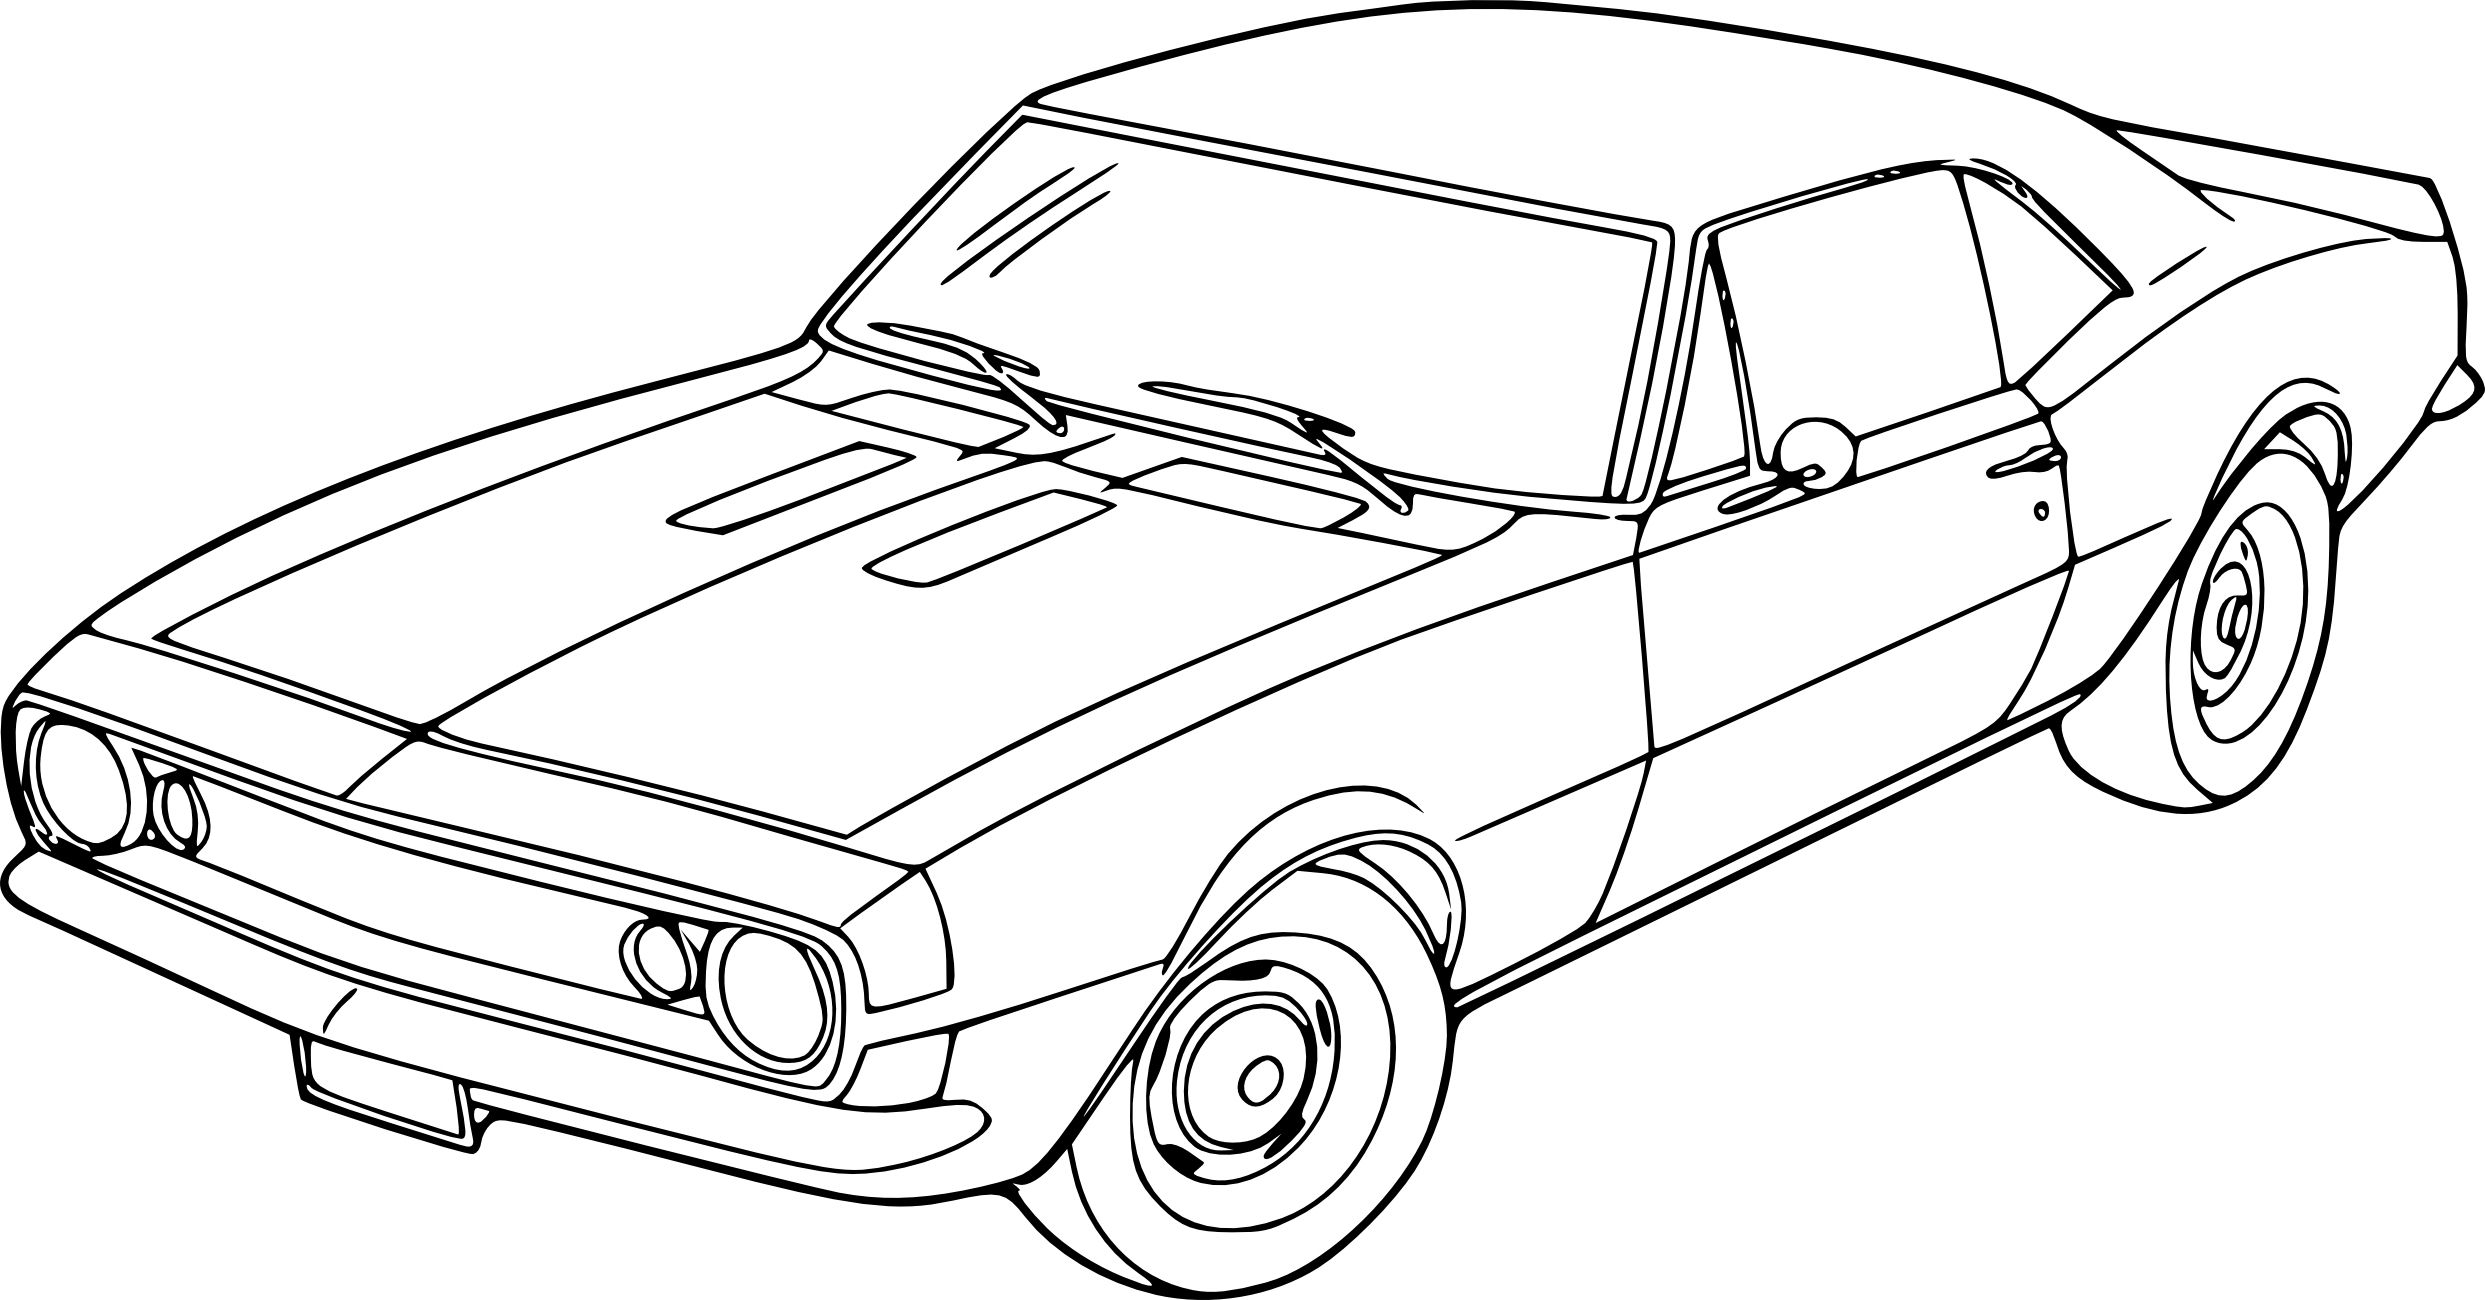 Coloriage Voiture Fast And Furious Toy Car Coloring Pages Car